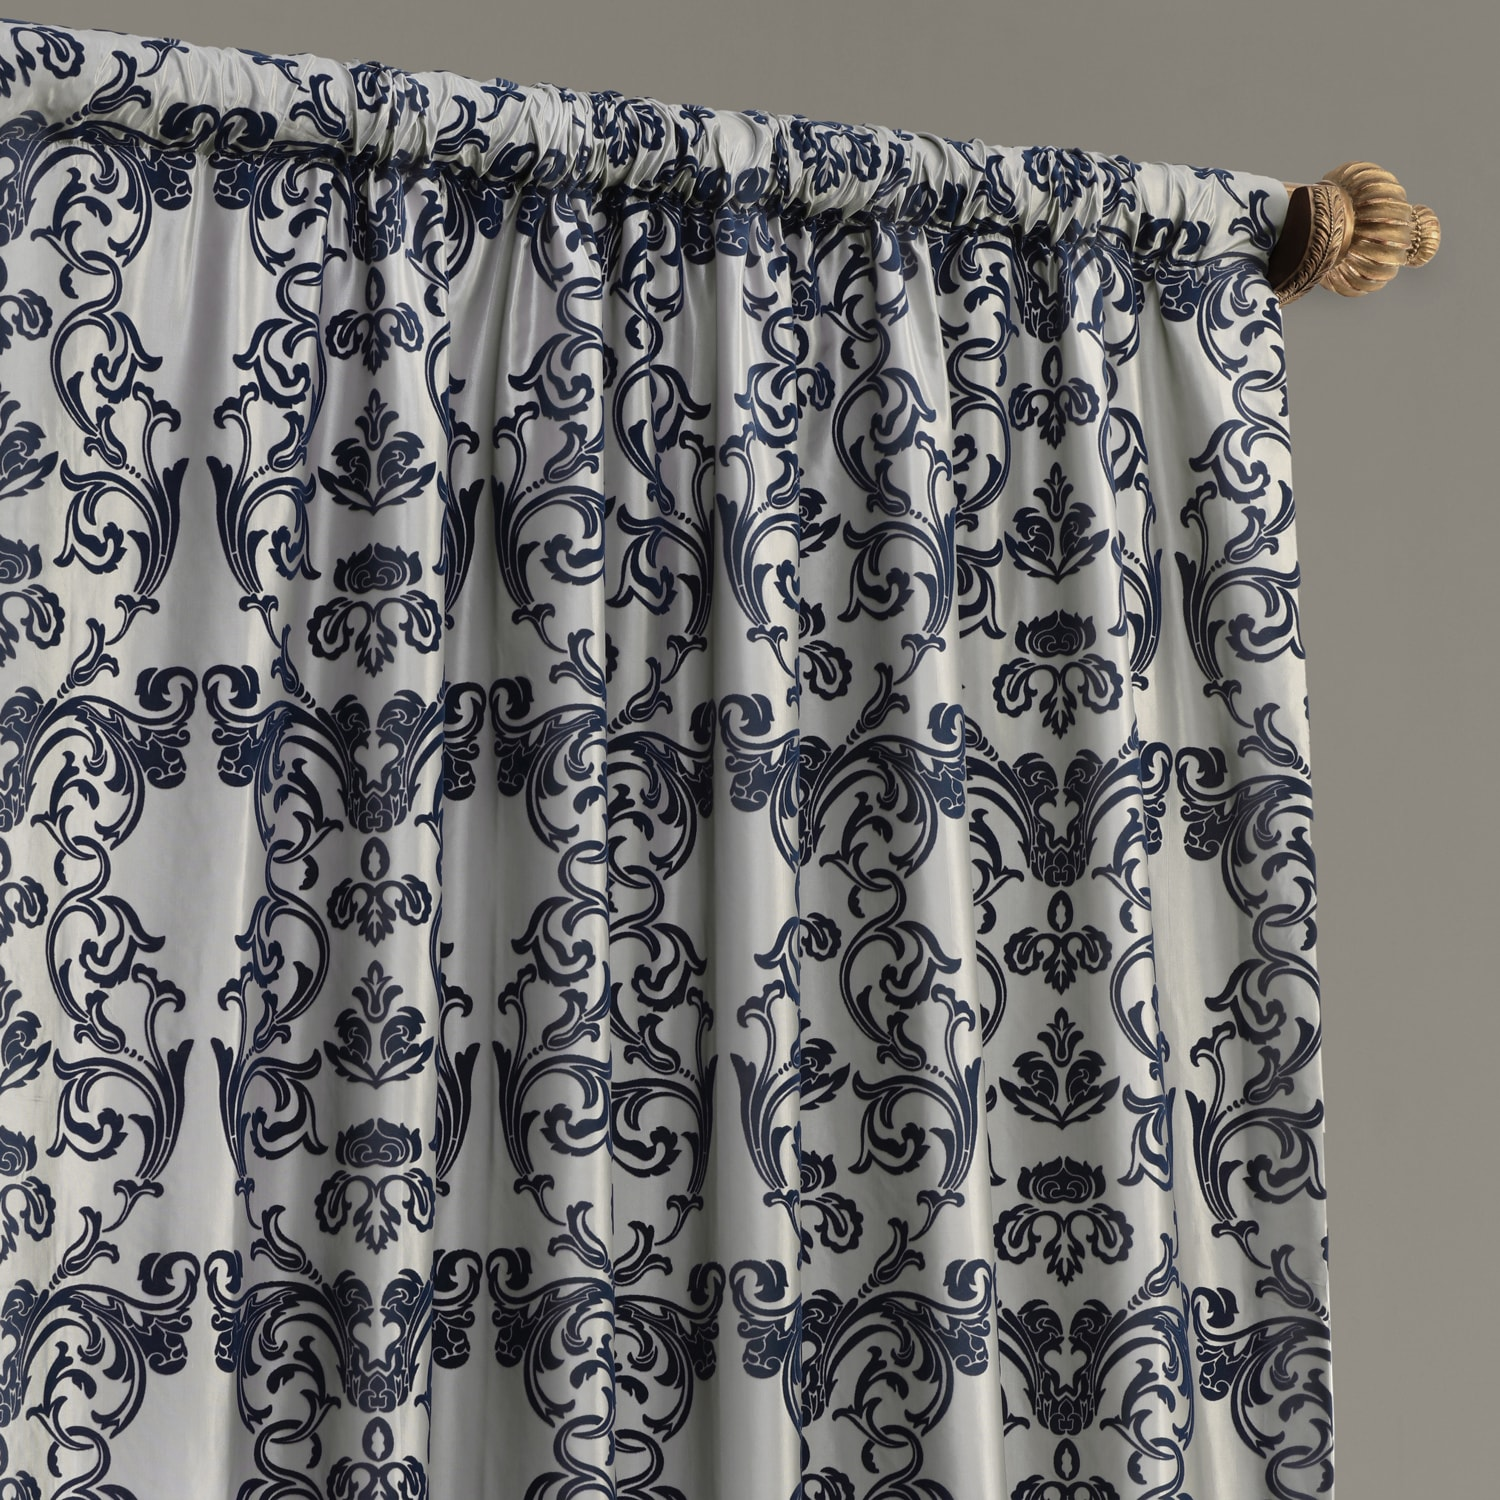 Firenze Silver & Blue Flocked Faux Silk Curtain